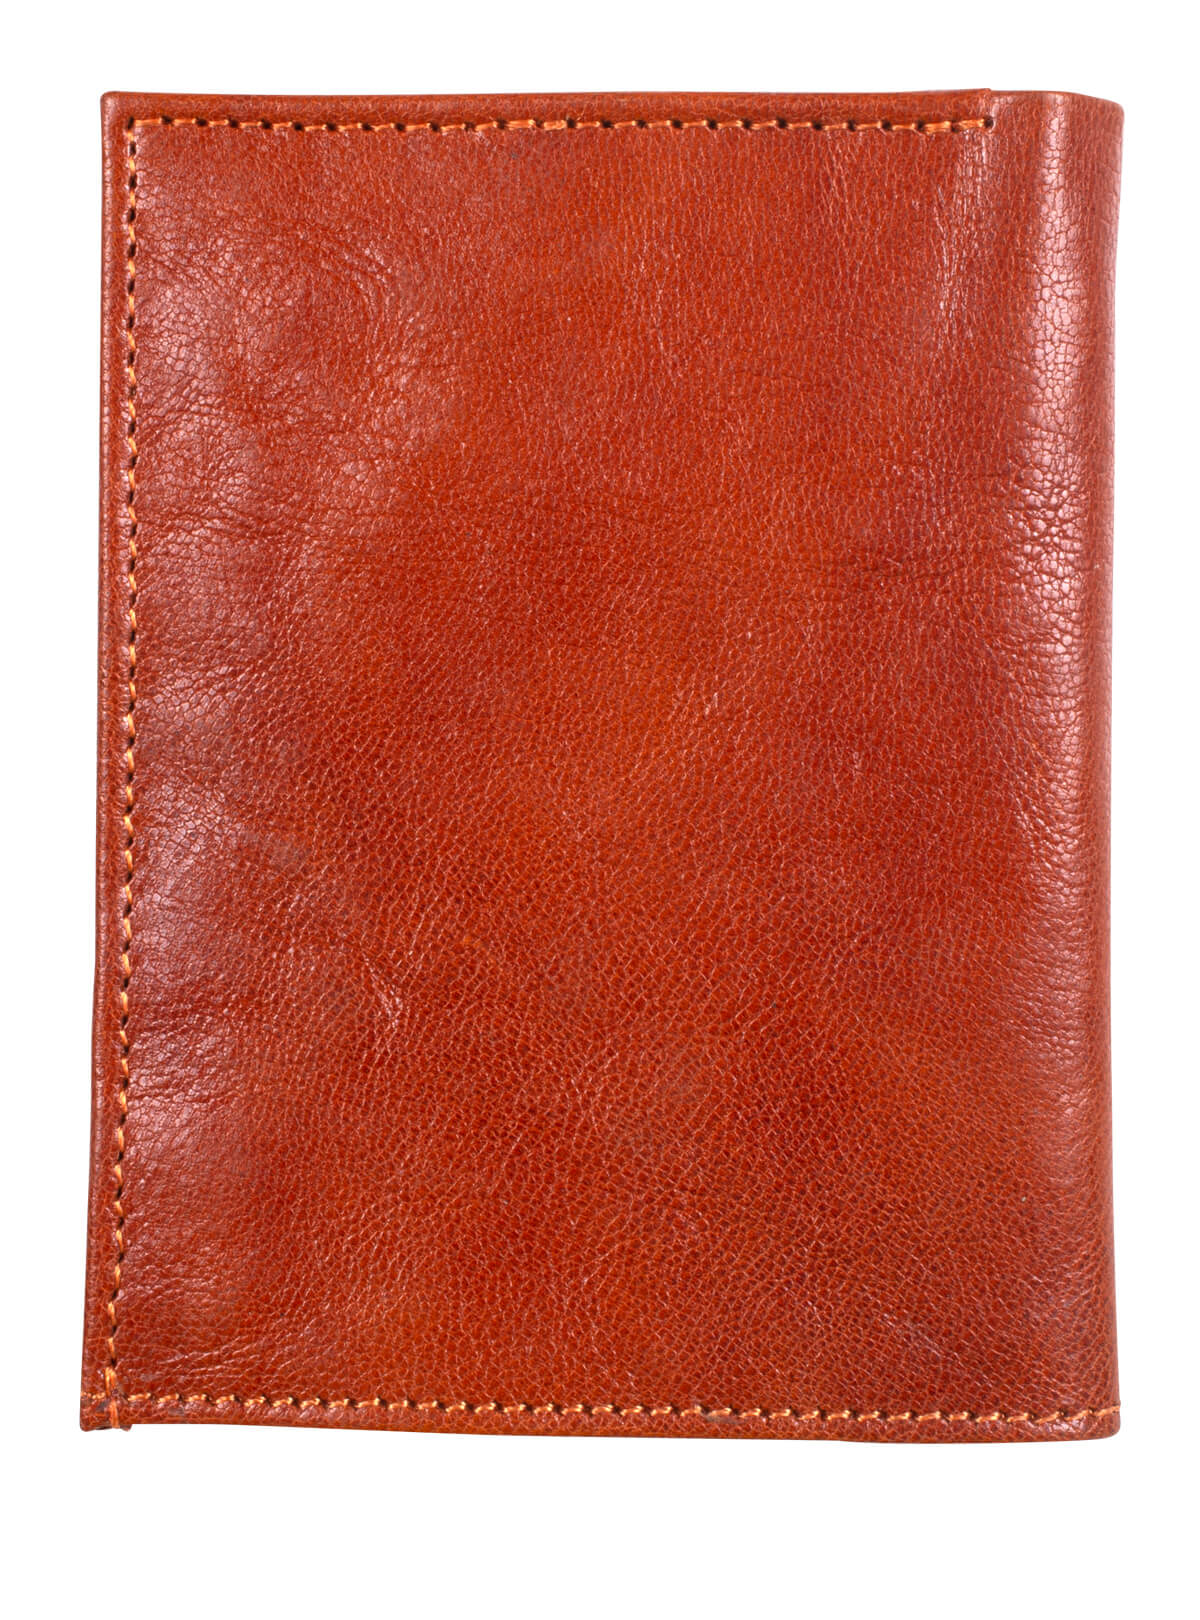 Sangria Red Leather Wallet